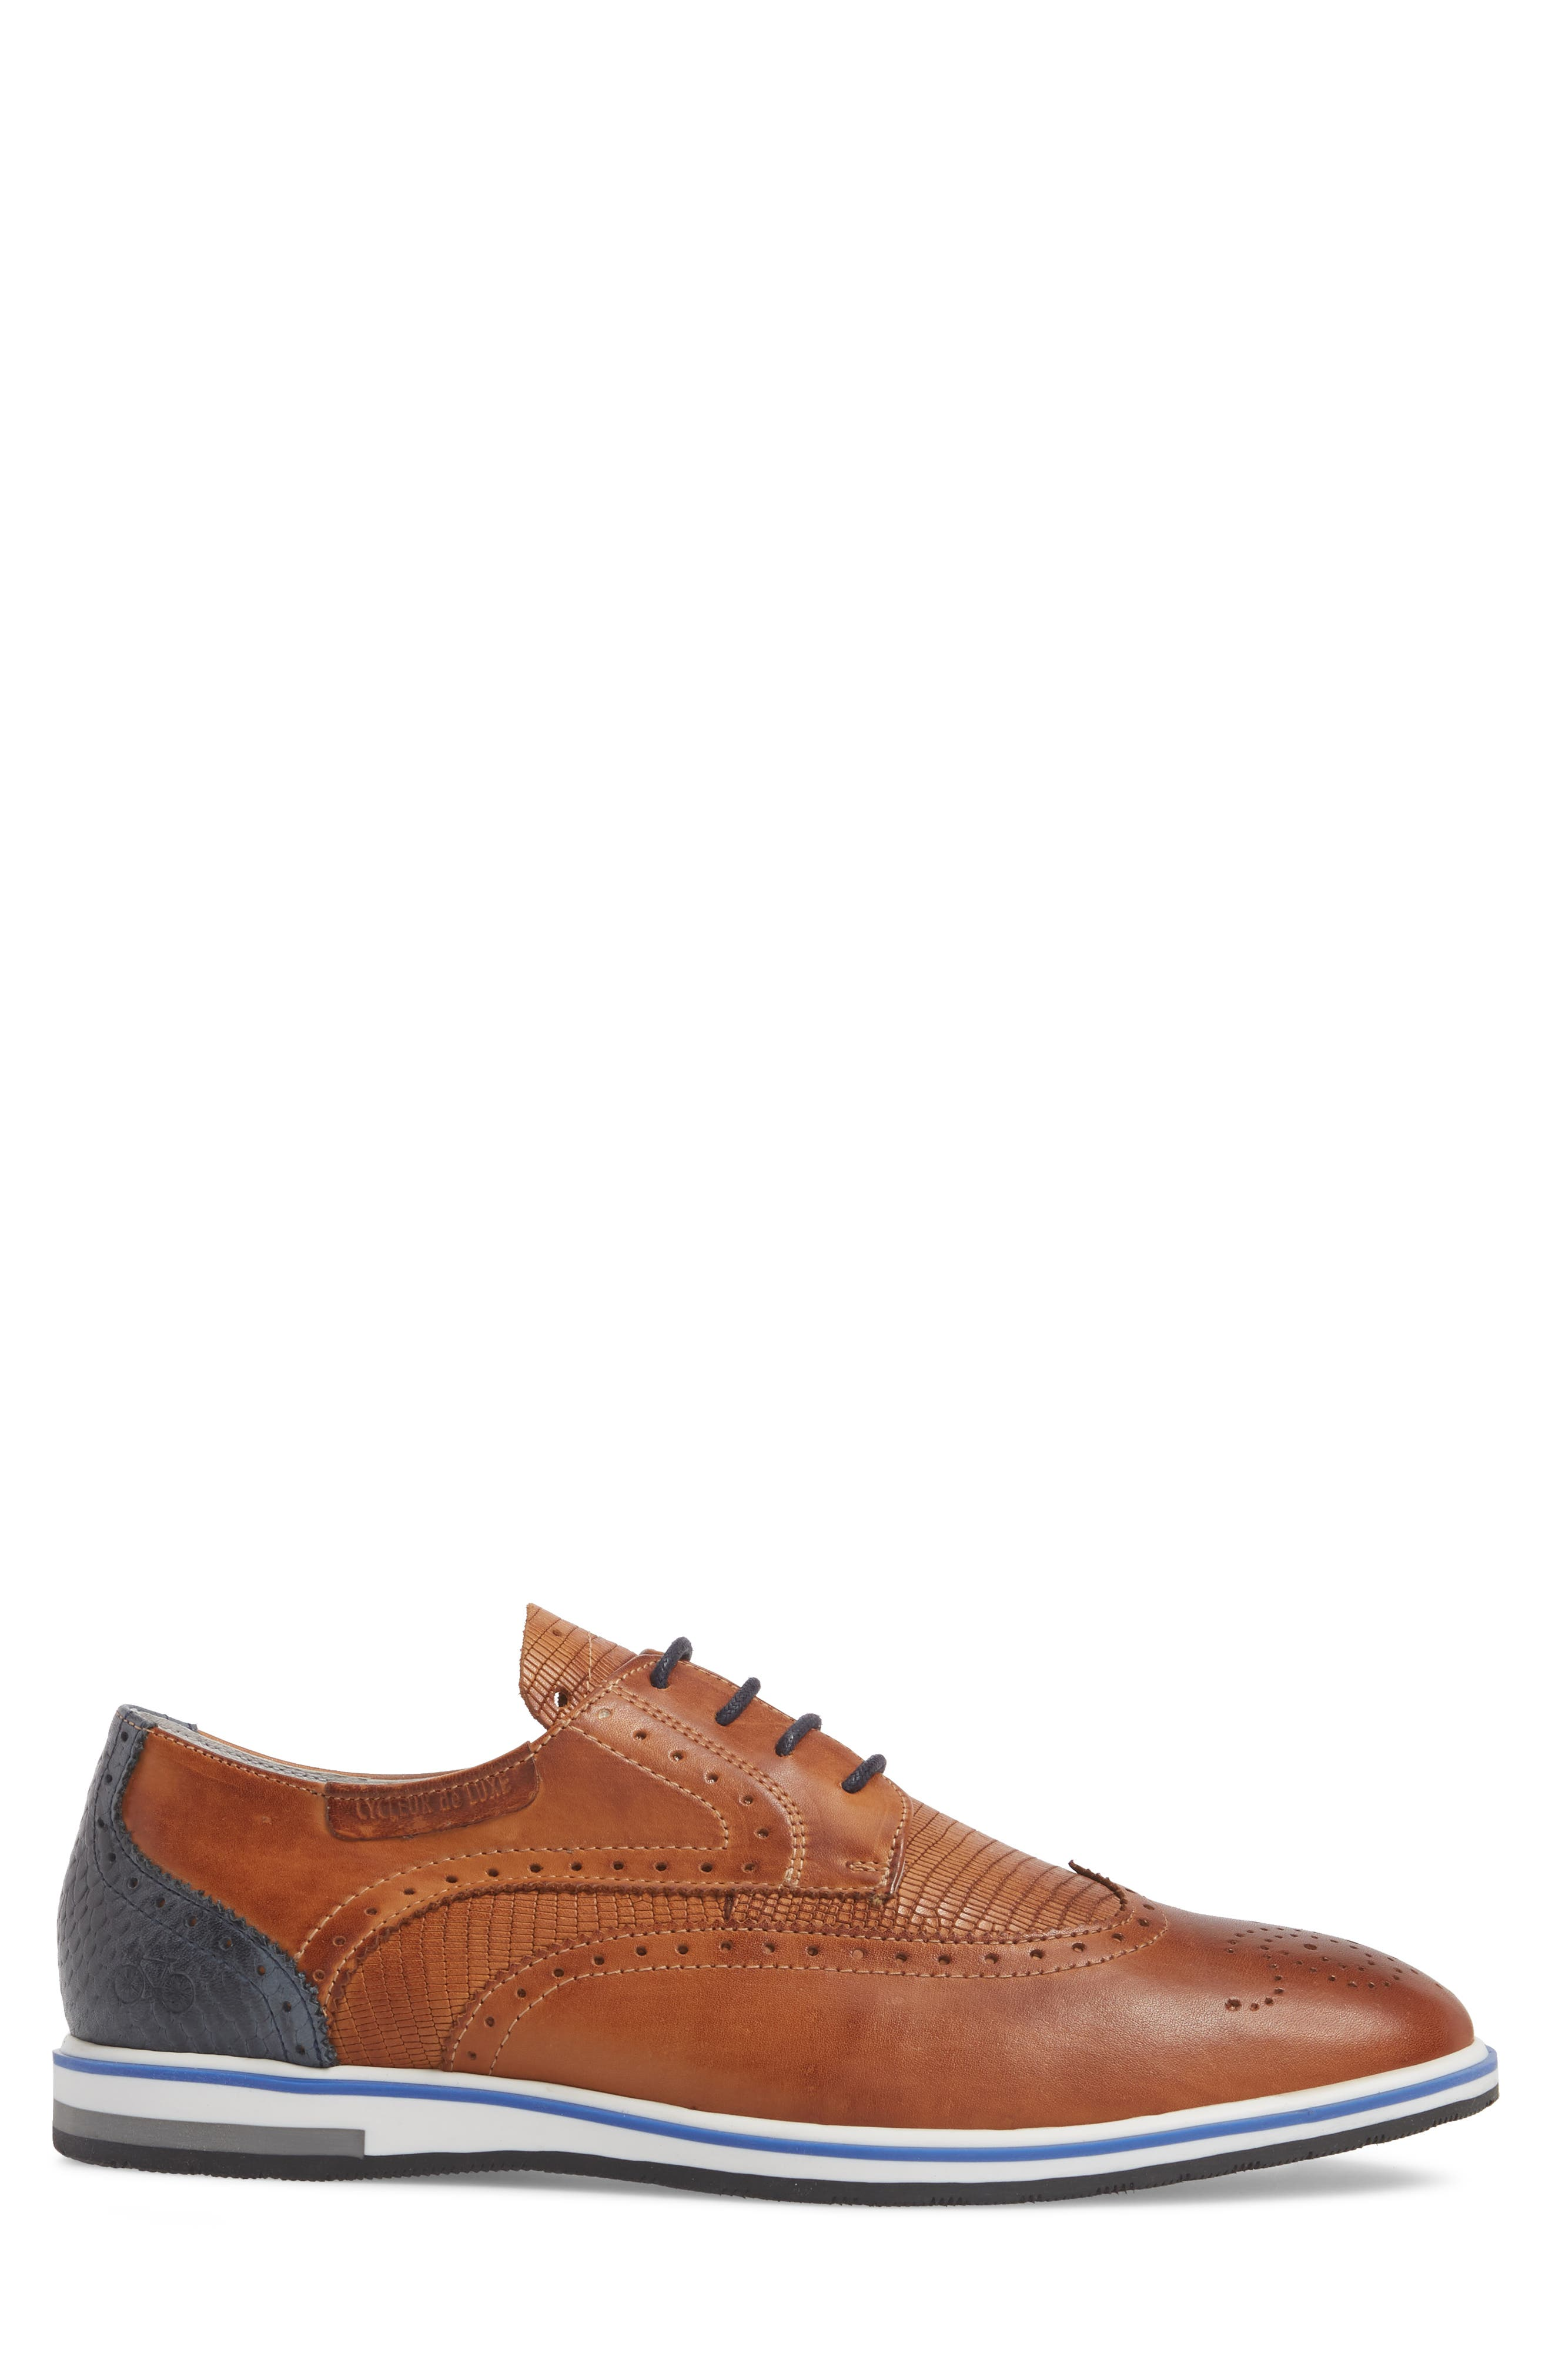 Pulsano Textured Wingtip,                             Alternate thumbnail 3, color,                             Cognac/ Denim Leather